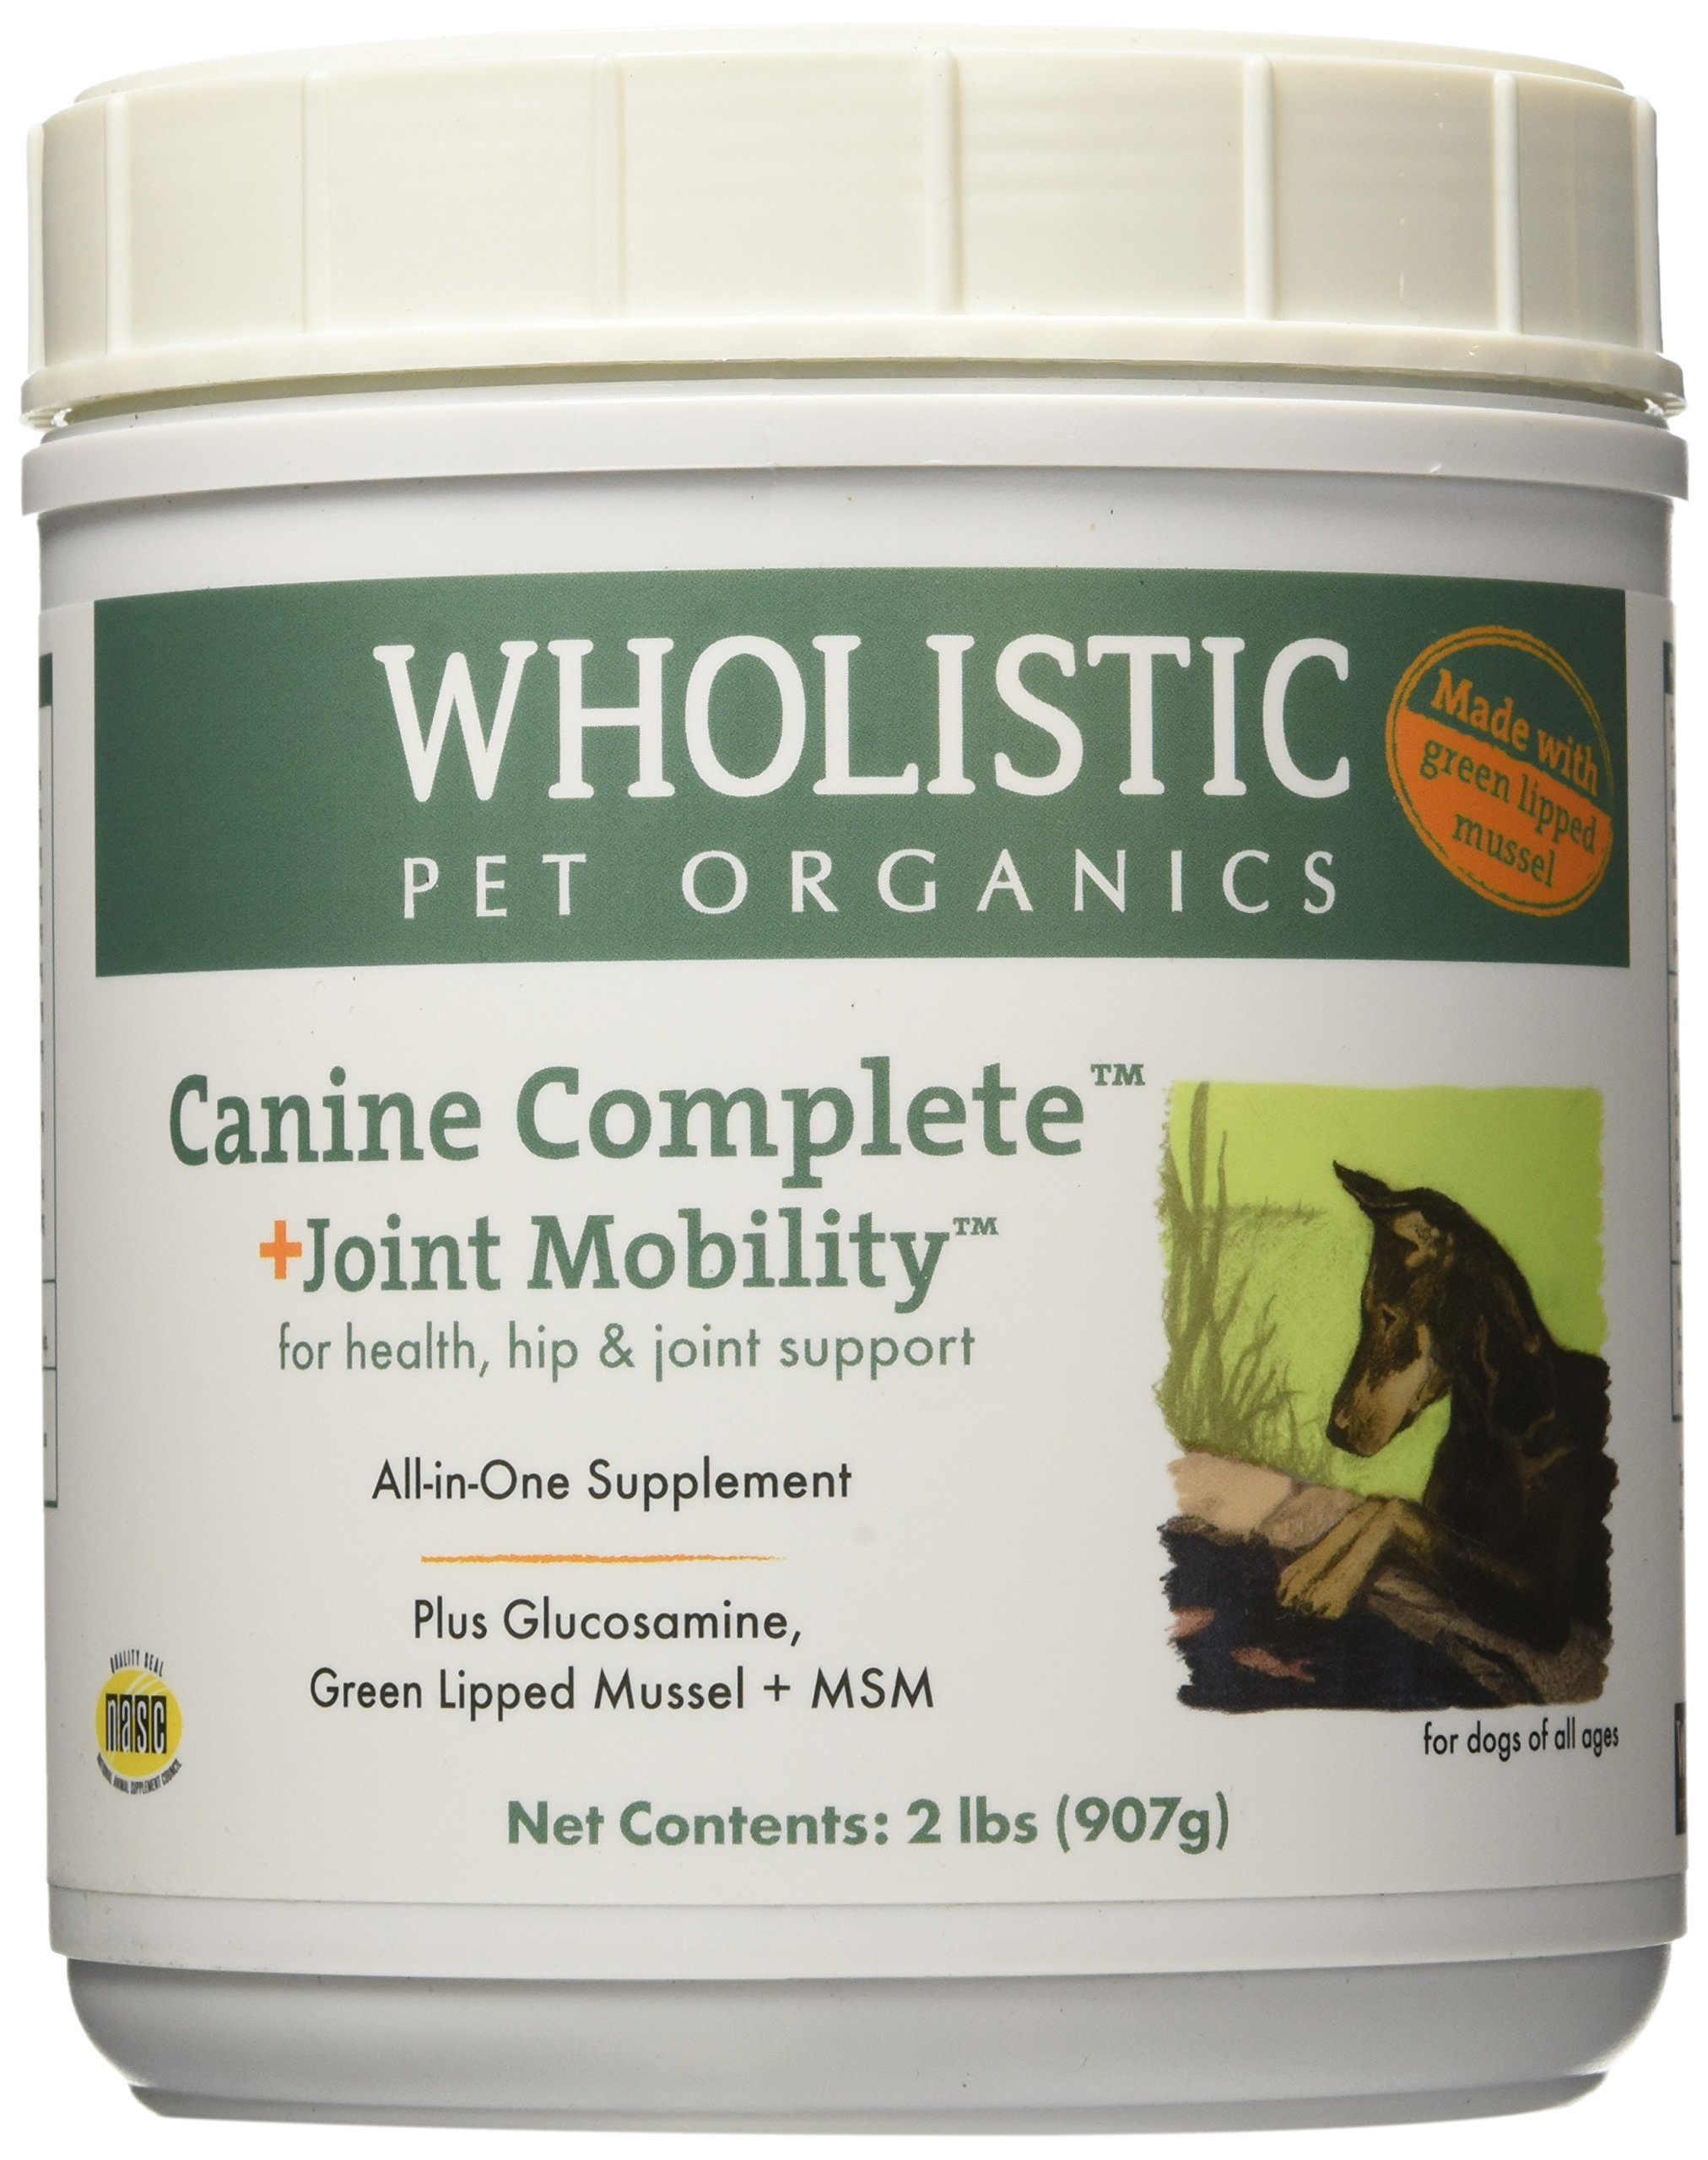 Wholistic Pet Organics Canine Complete Plus Joint Mobility with Green Lipped Muscle Supplement